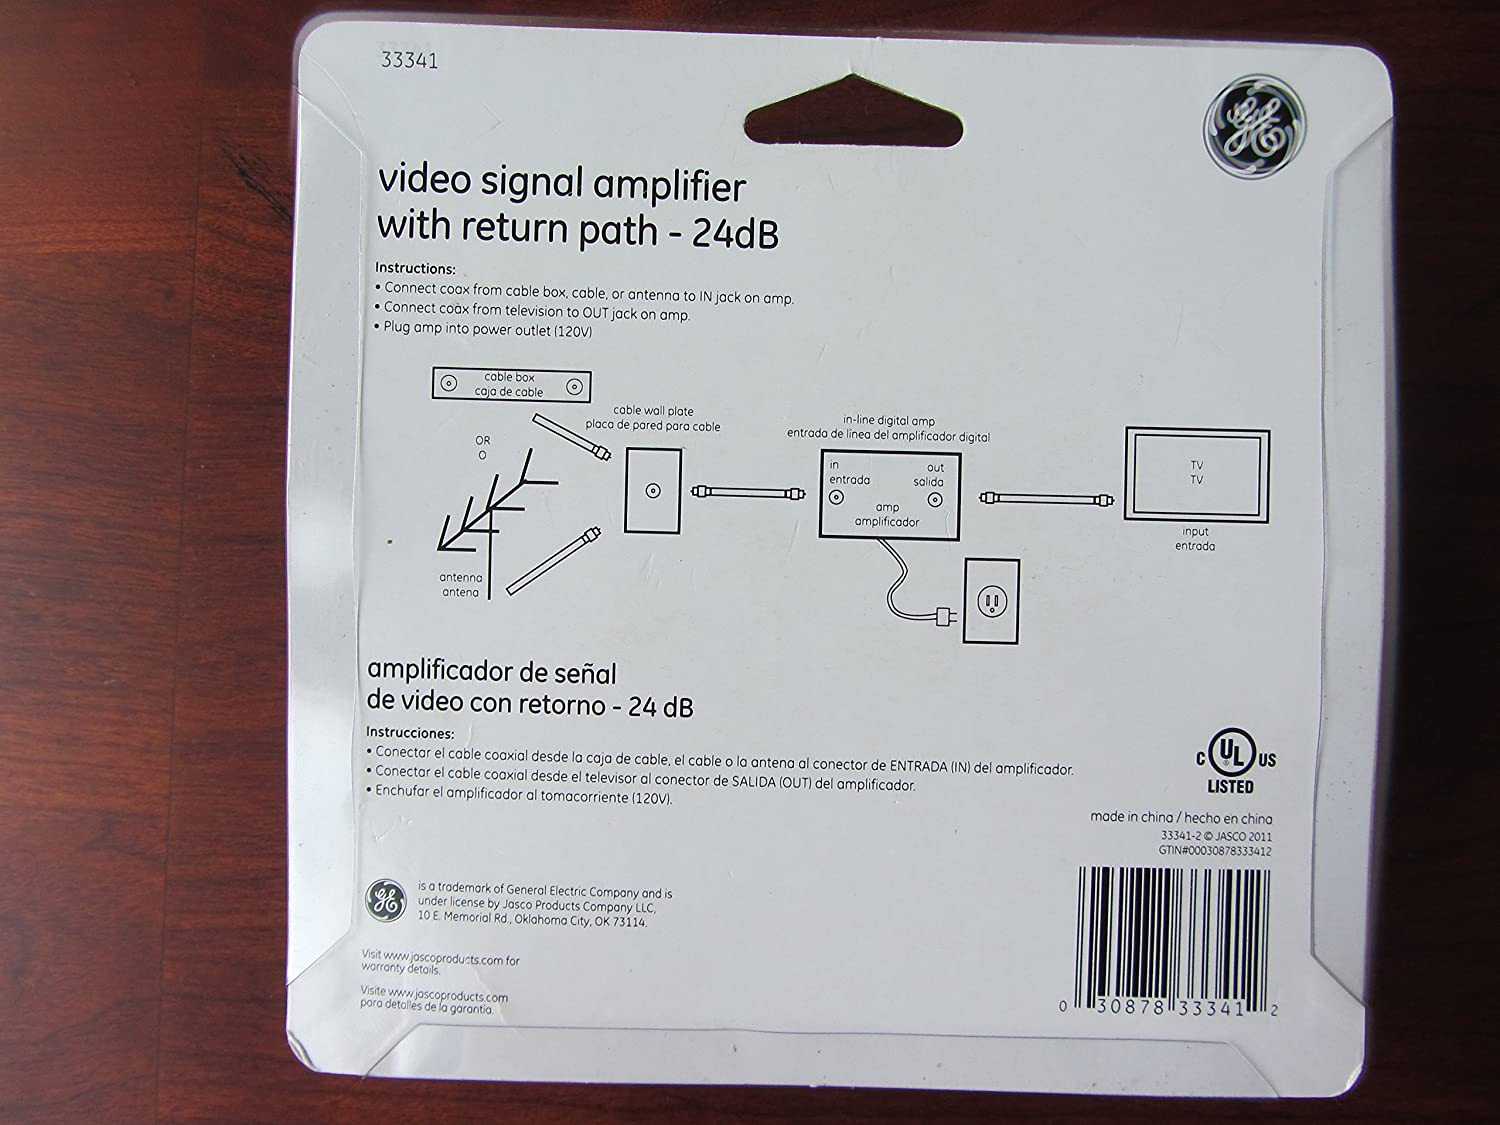 Amazon.com: GE Video Signal Amplifier With Return Path: Home Audio & Theater